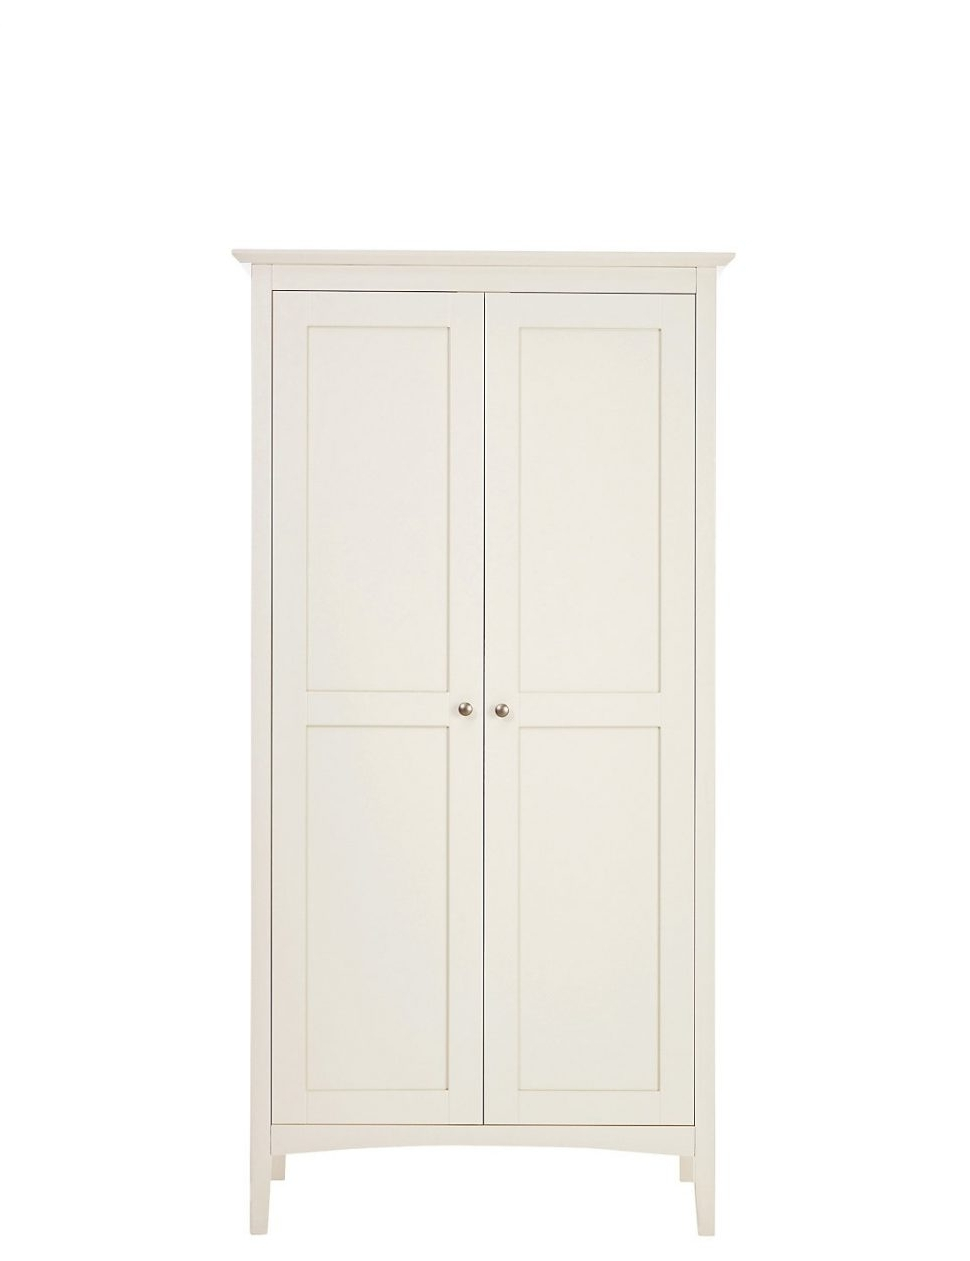 Cupboard : Cl Ky X Small Two Door Cupboard Wardrobes Single Double Throughout Most Recently Released Small Single Wardrobes (View 10 of 15)